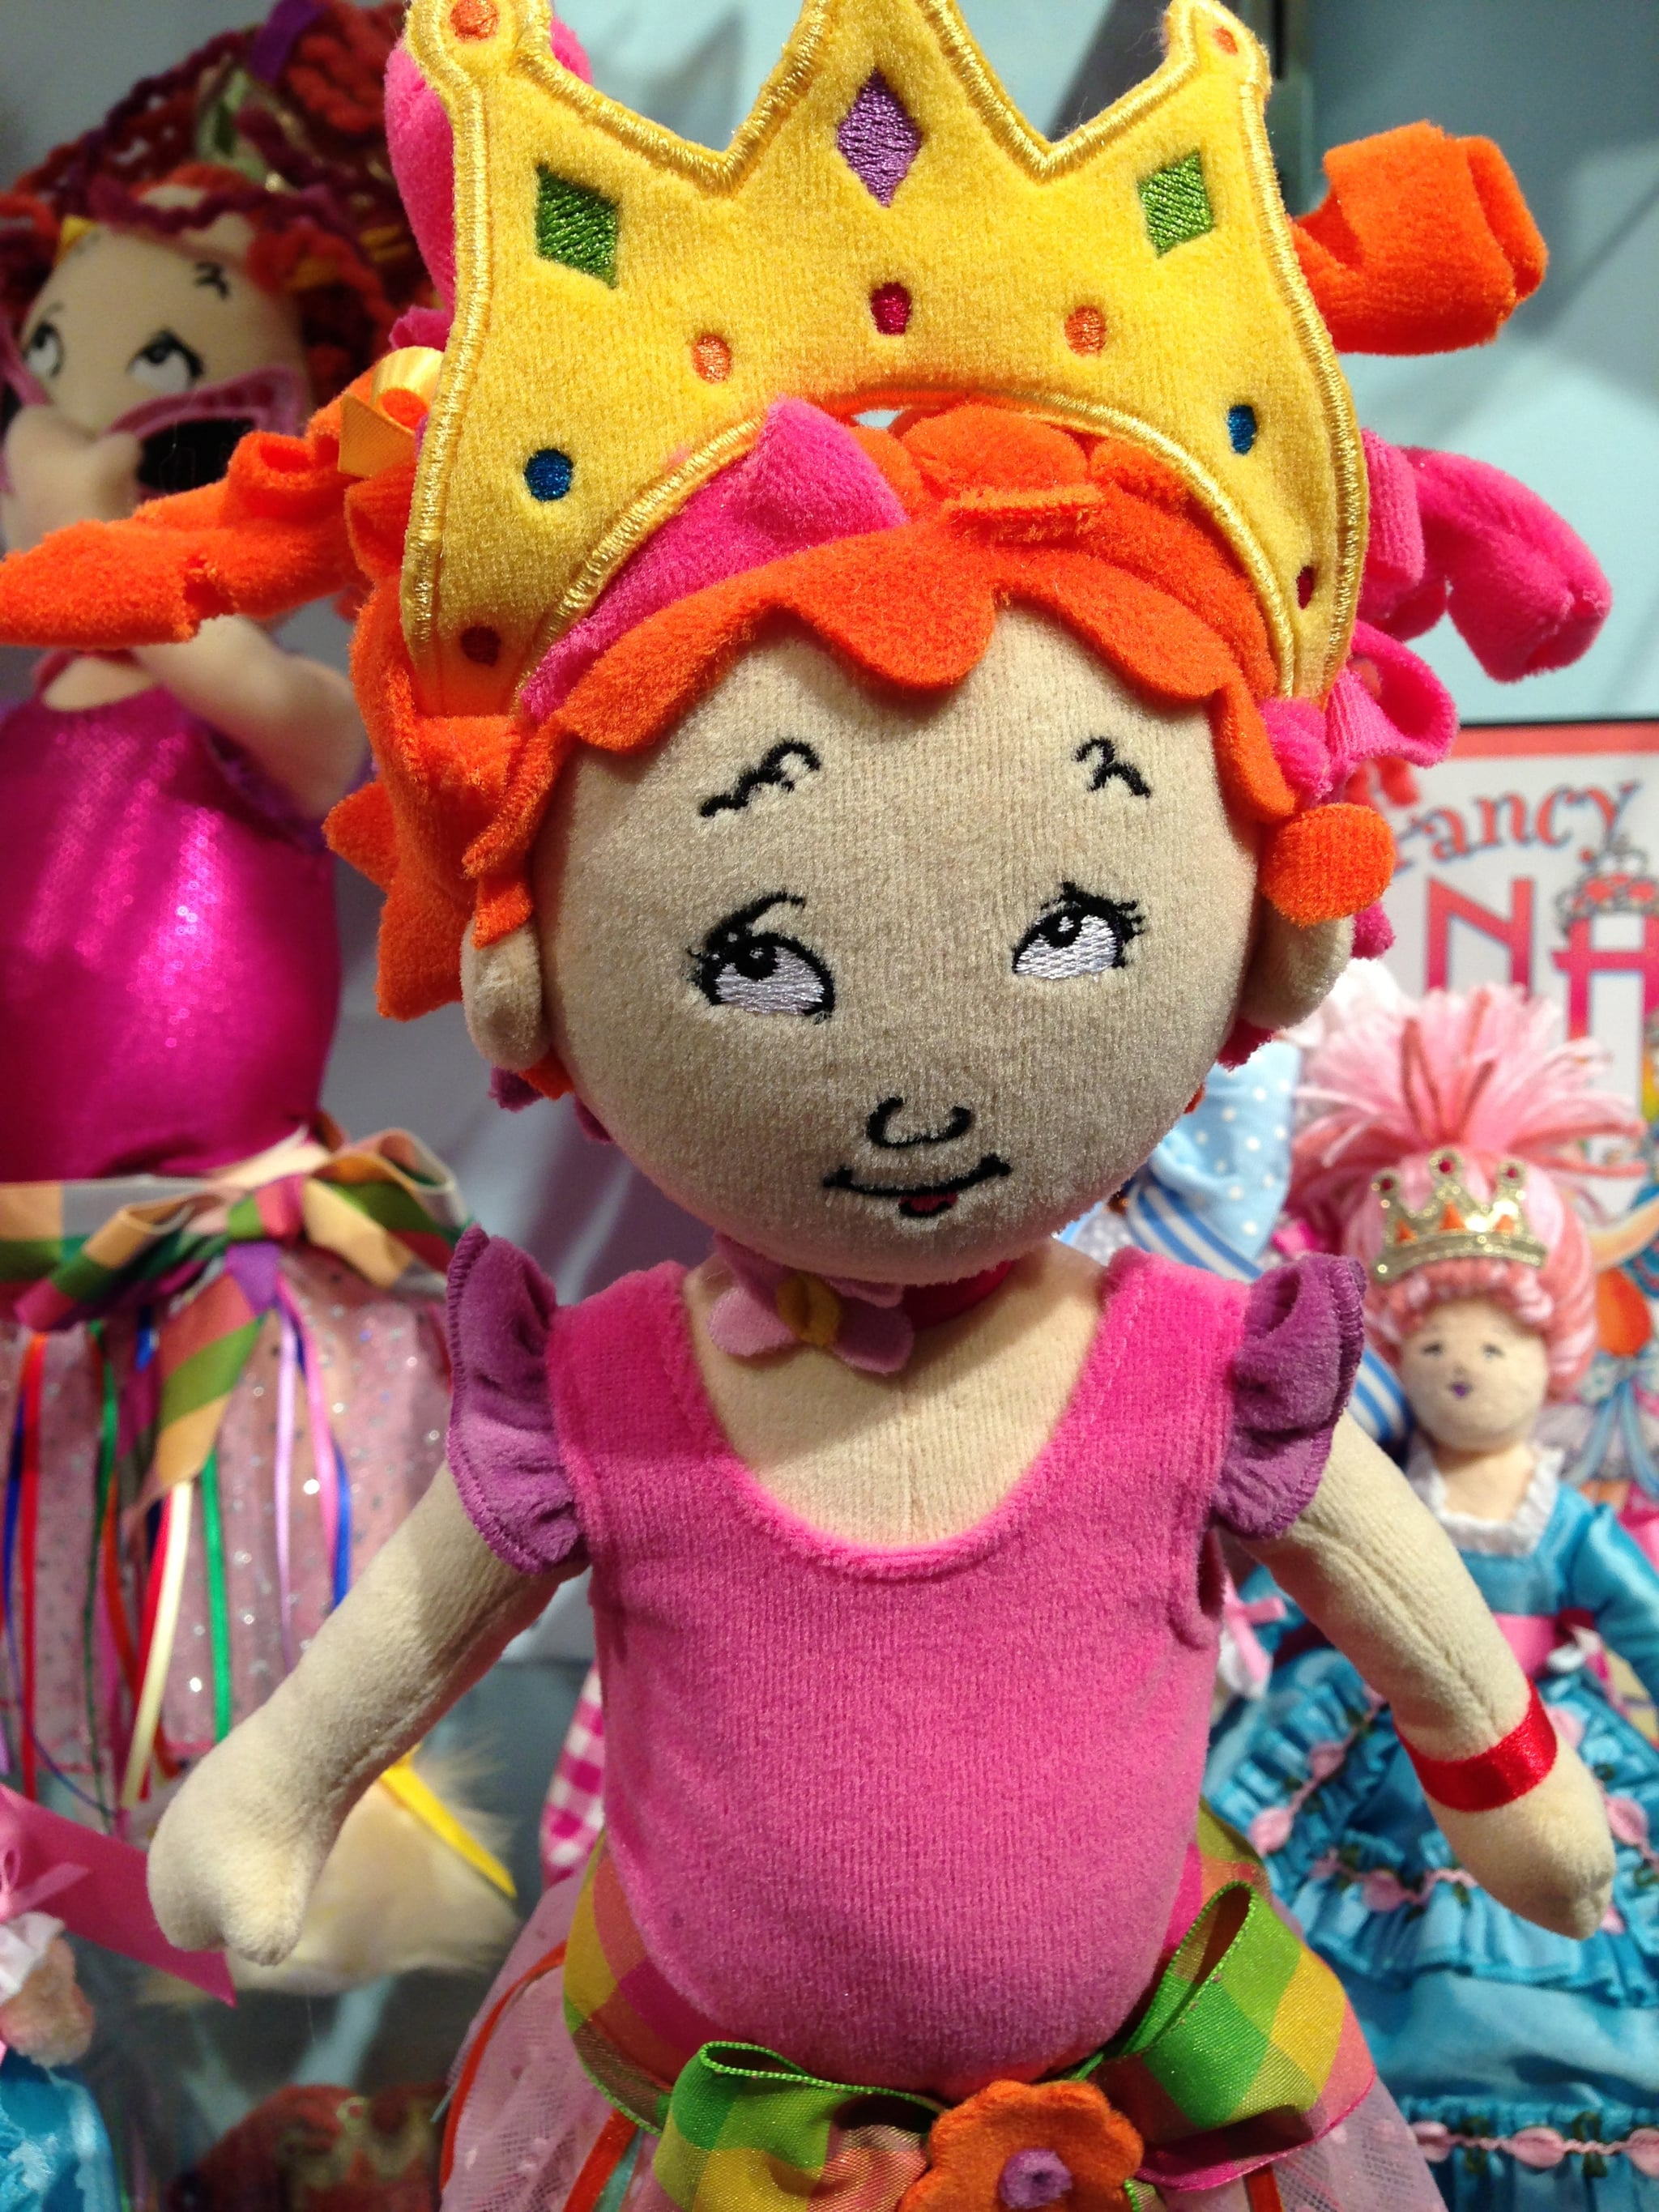 Fancy Nancy was brought to life at Madame Alexander!